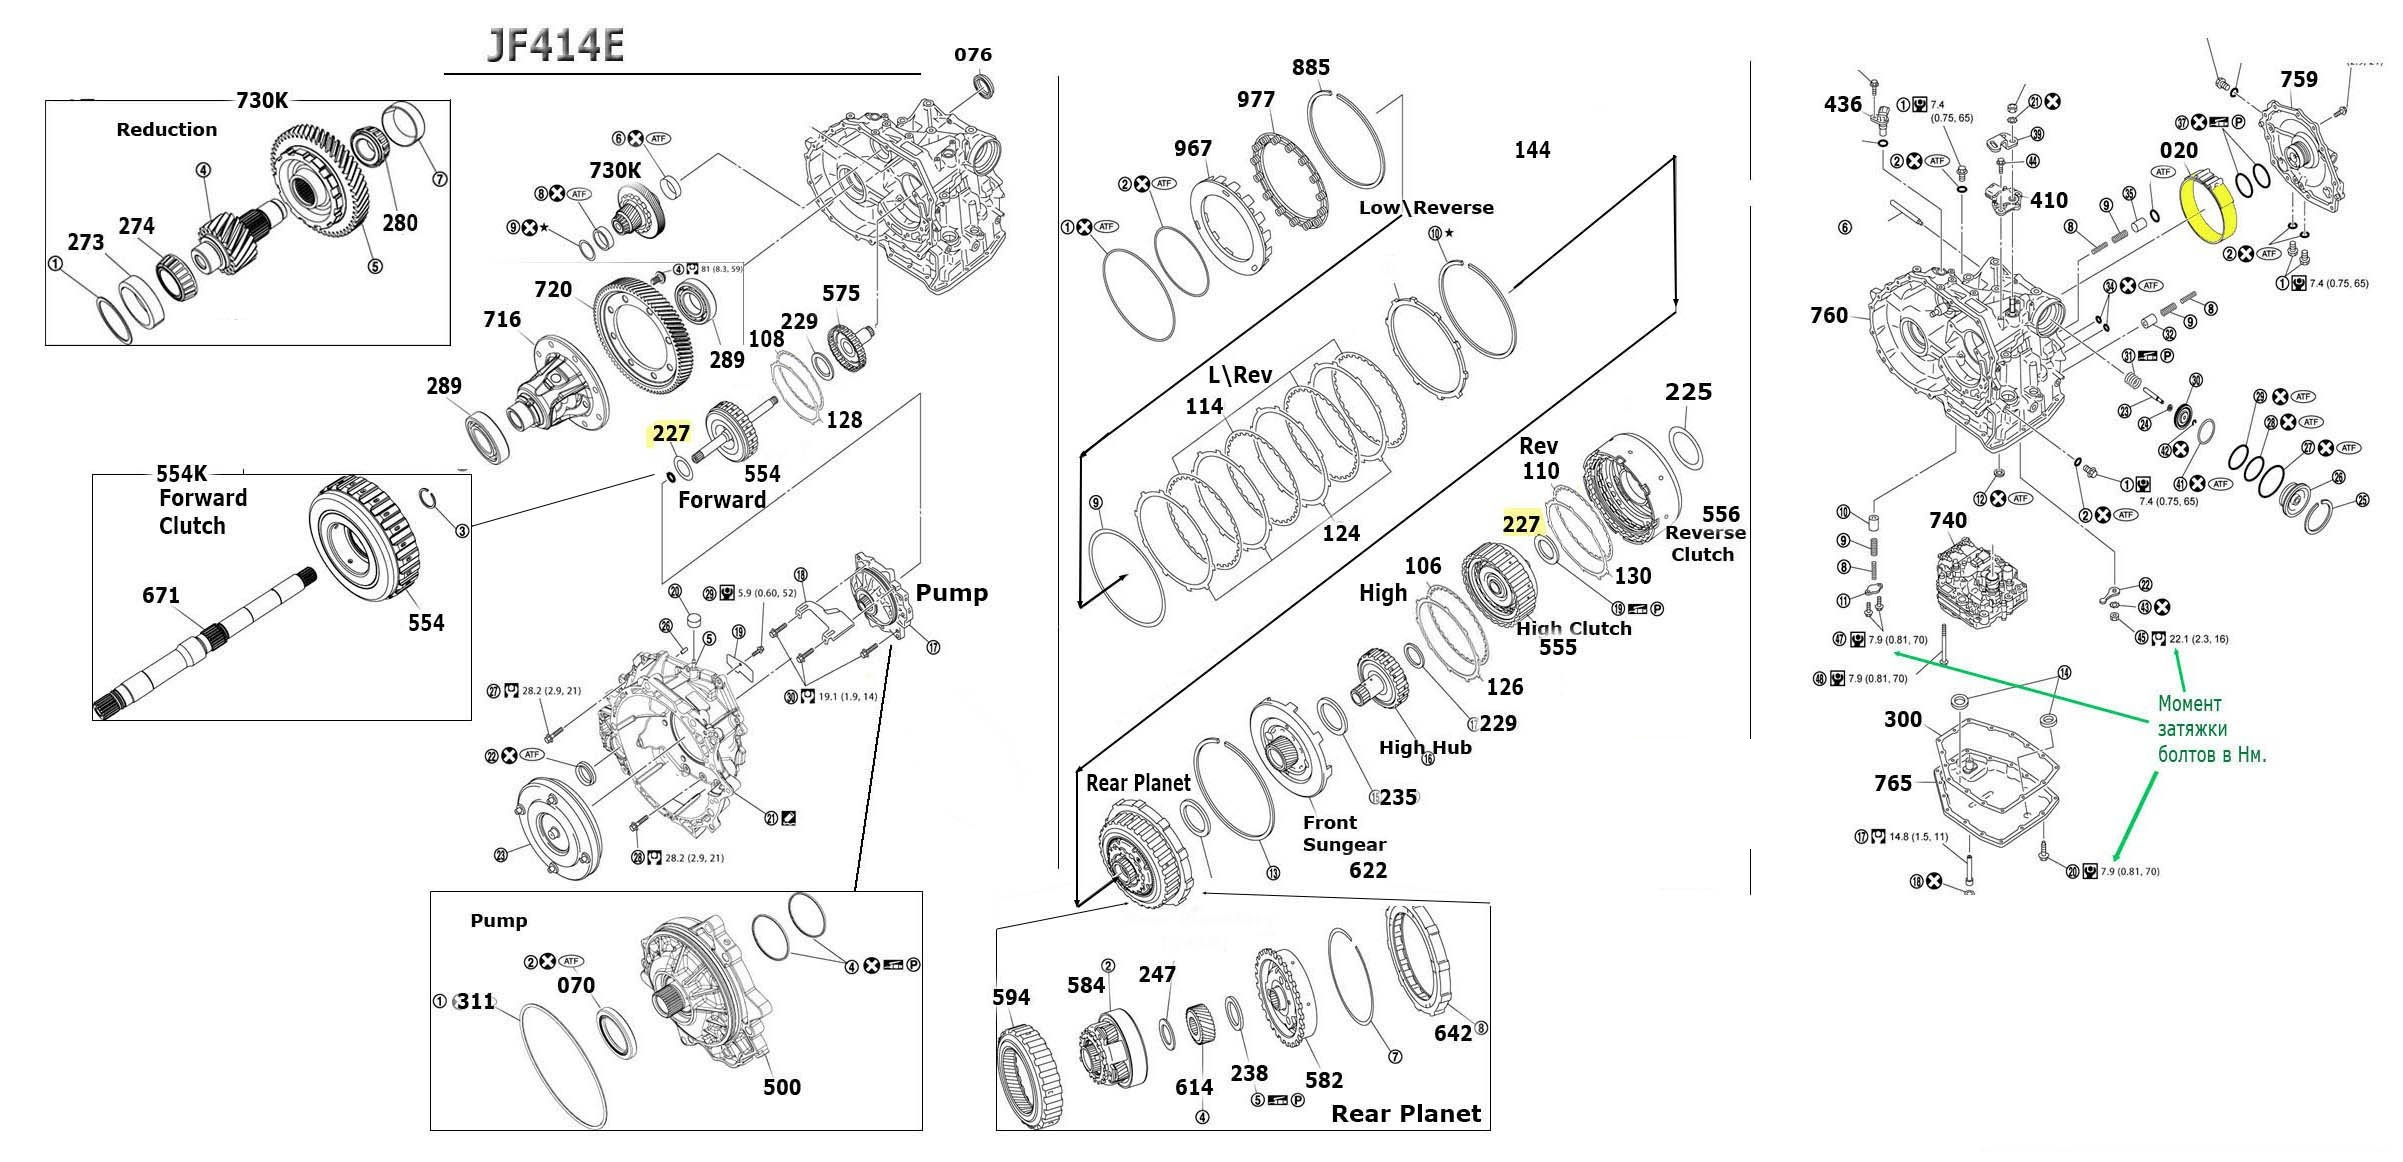 JF414E Transmission parts, repair guidelines, problems